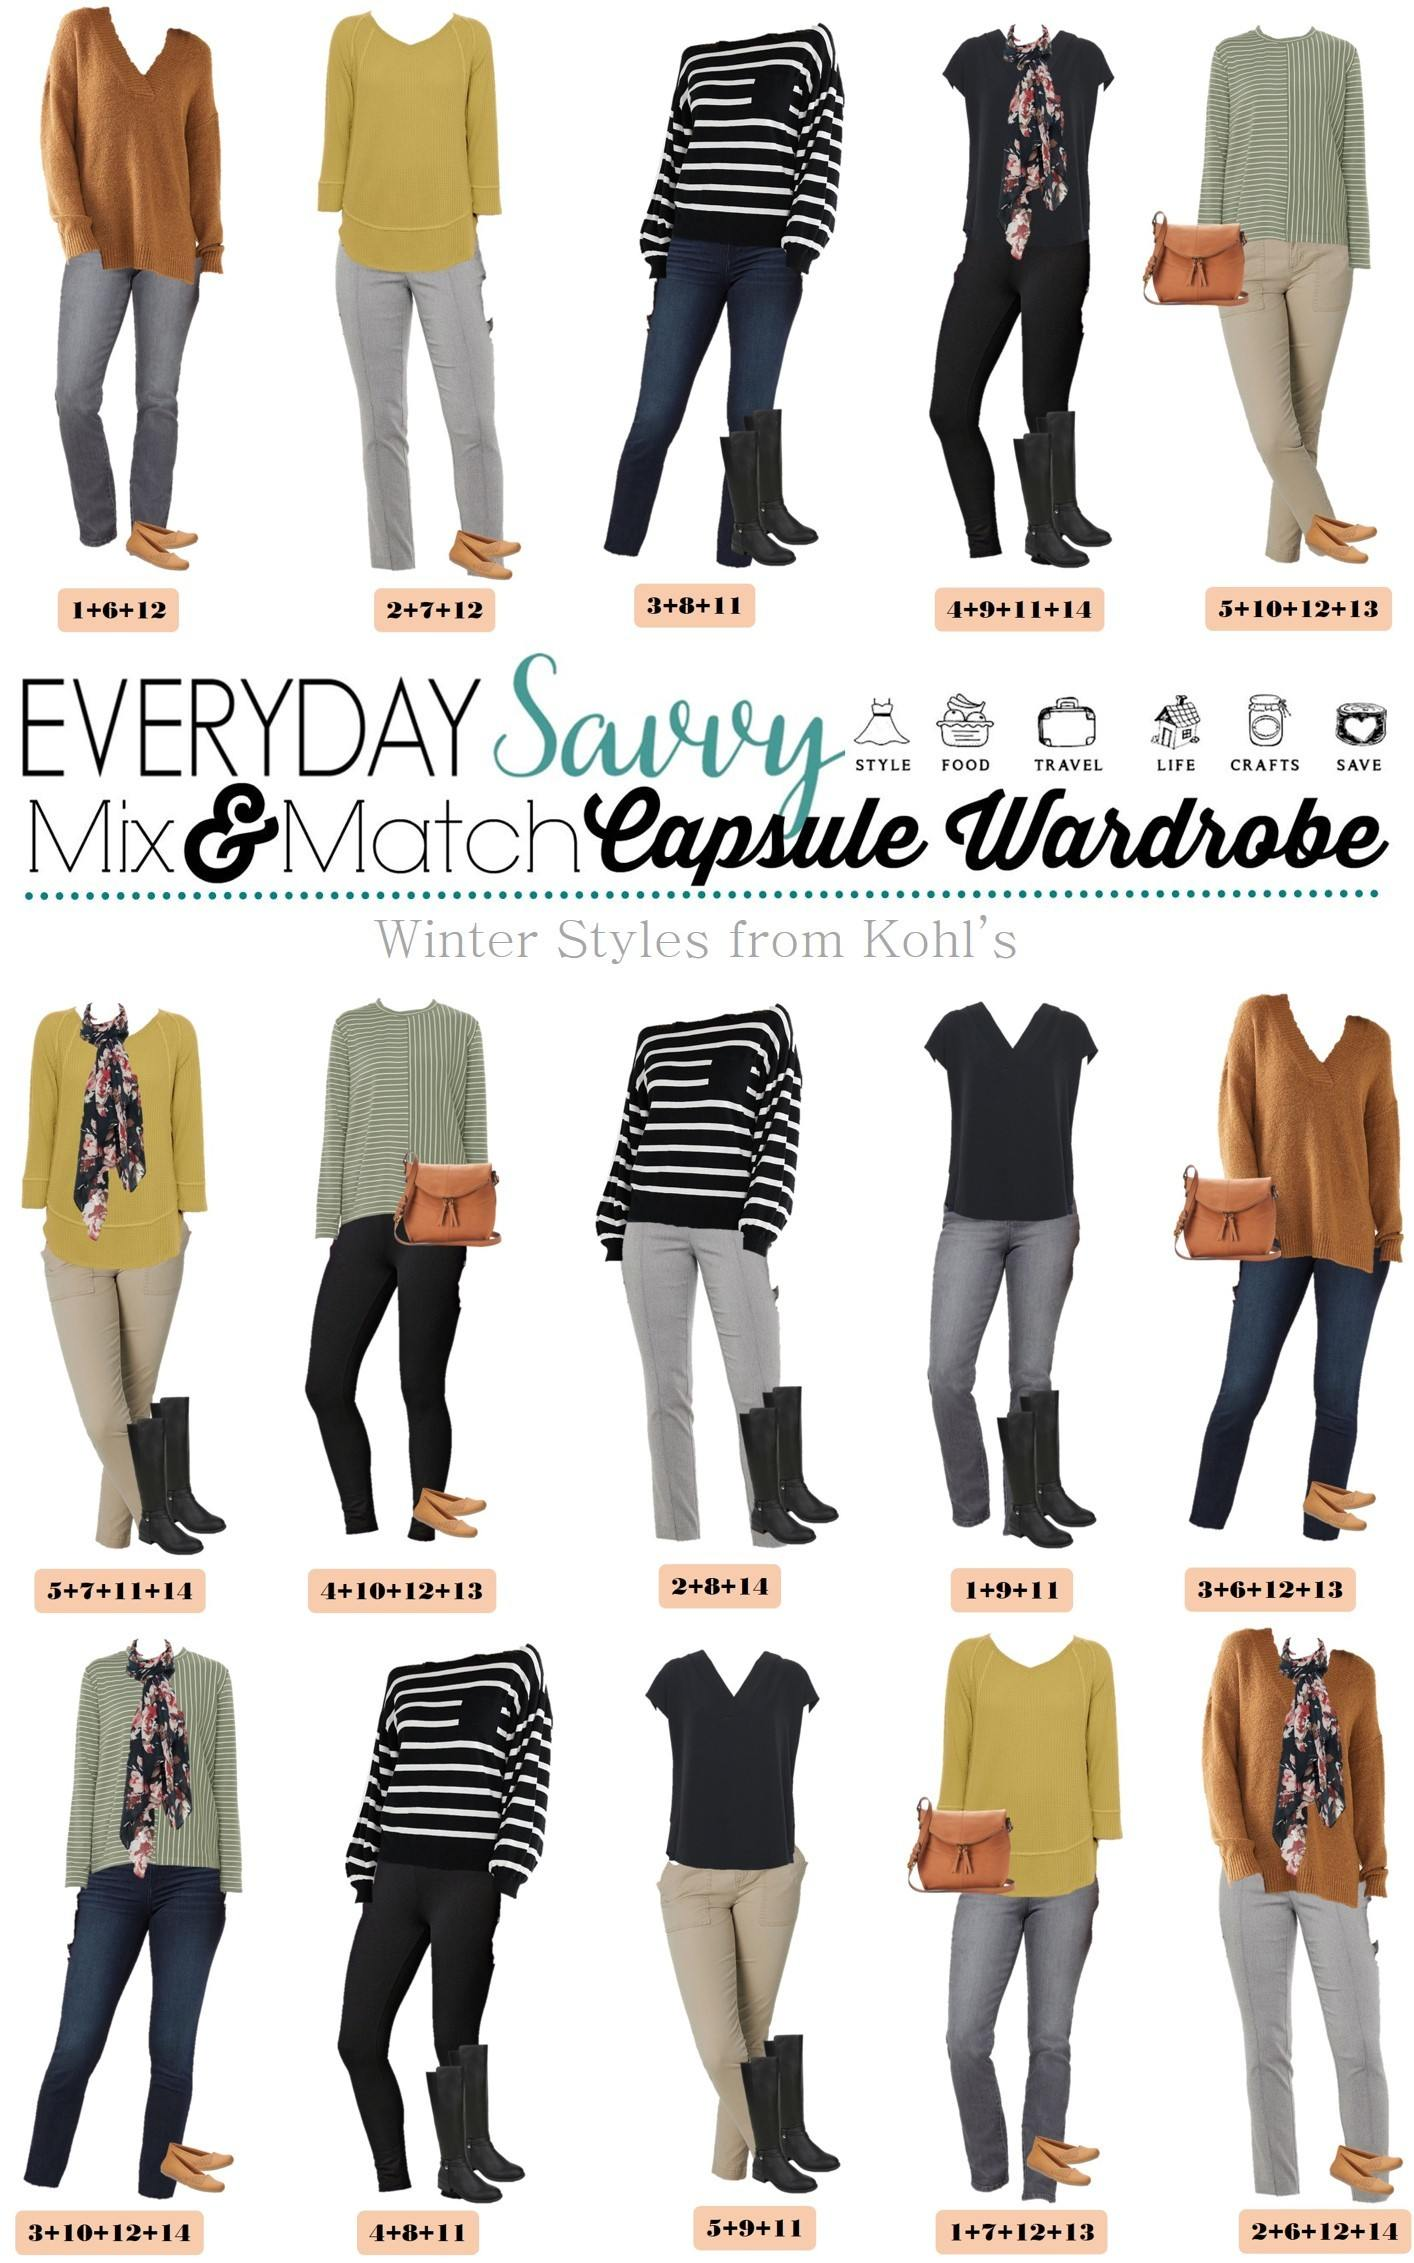 mix and match winter capsule wardrobe from Kohls - 15 winter outfits